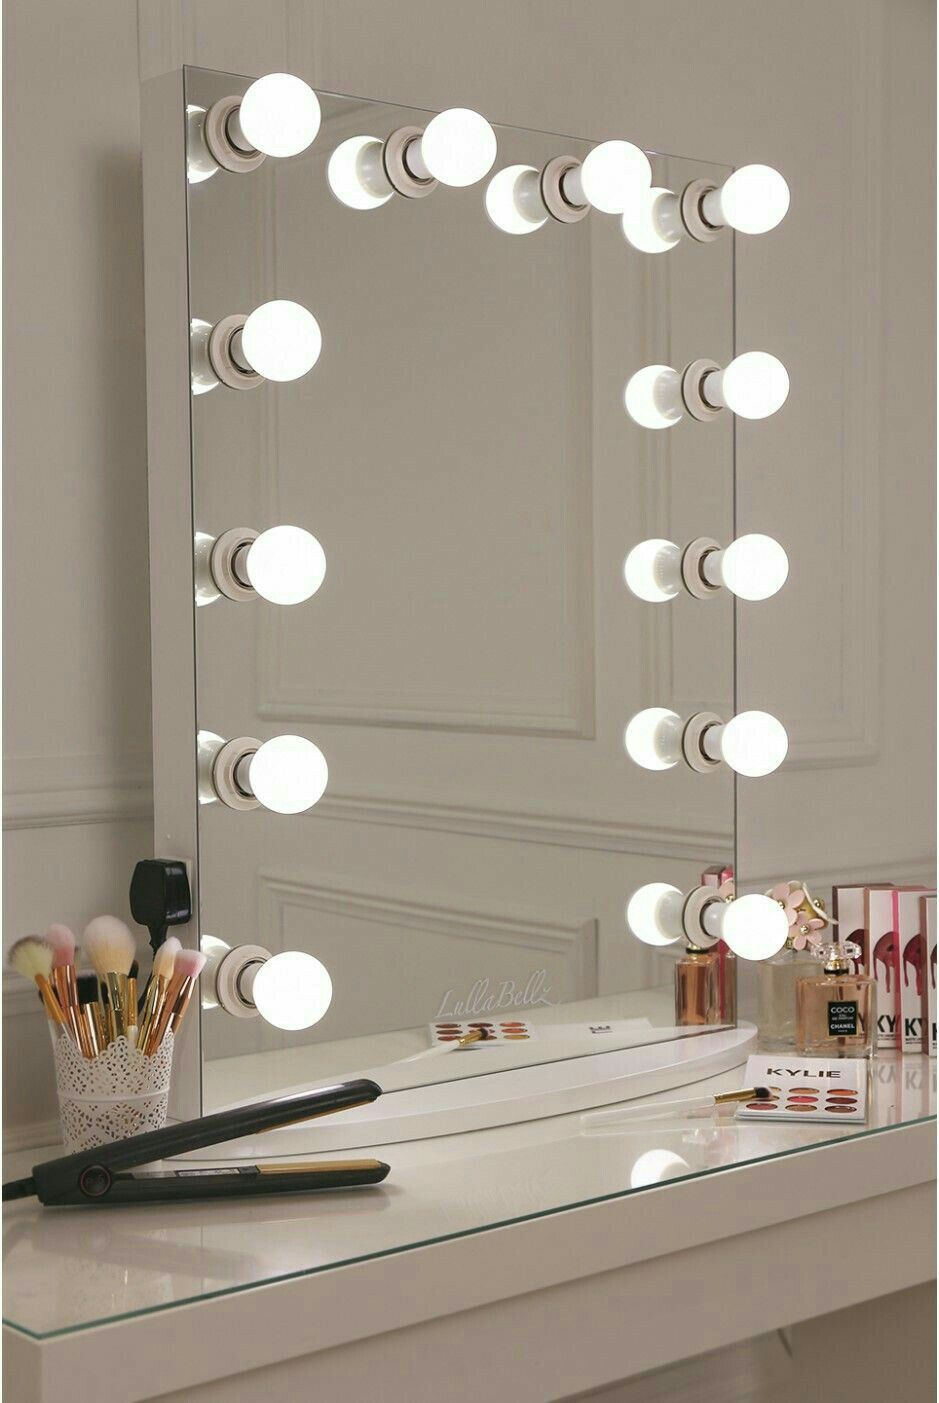 N.I.C.O.L.E GXLDEN22 Room inspiration, Diy vanity